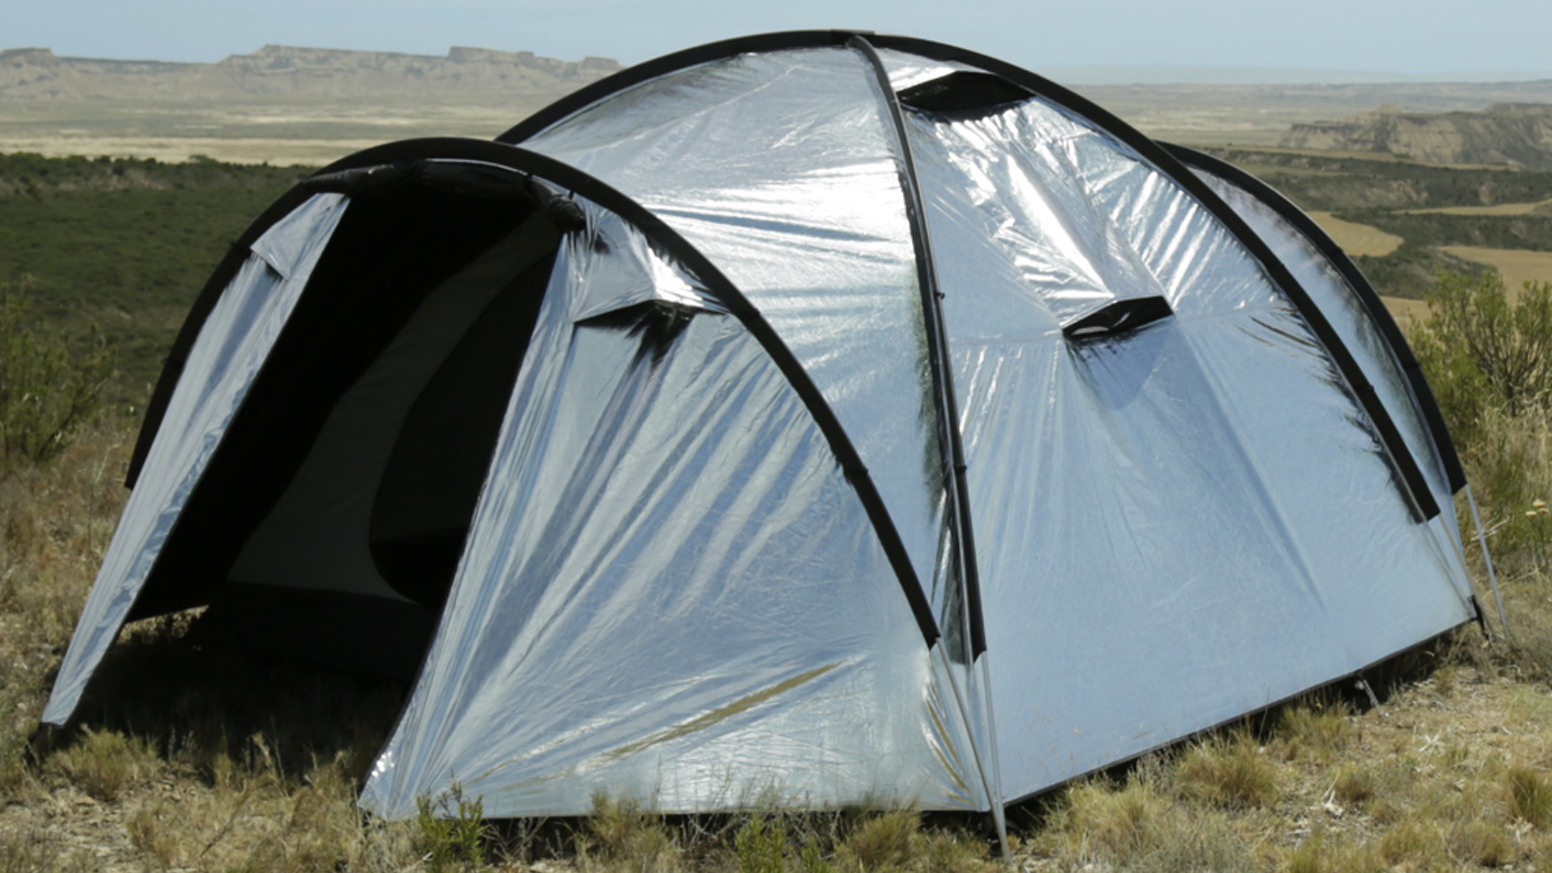 Ultra-reflective fly fabric + built-in fans = the best possible sleep when camping. Even in blazing sunshine!